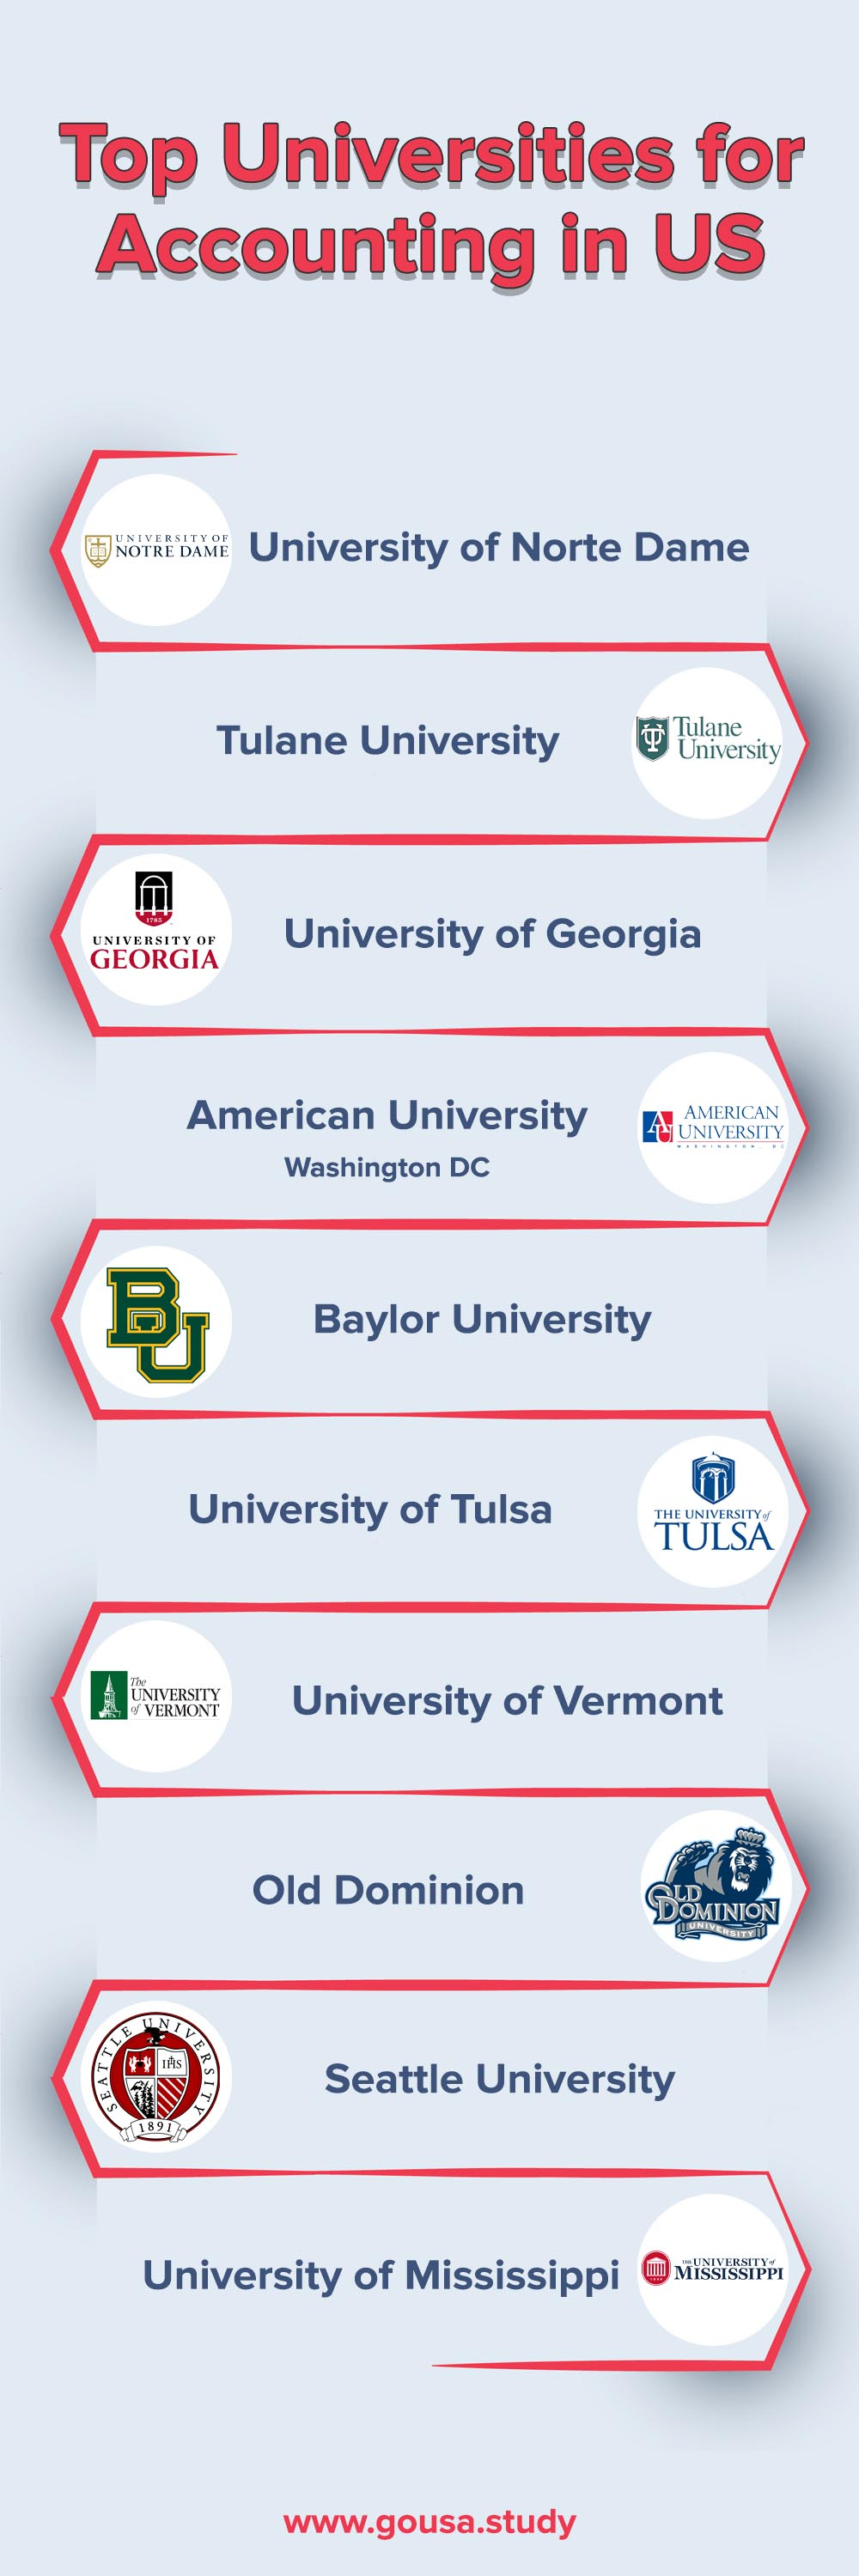 Top Universities for Accounting in US